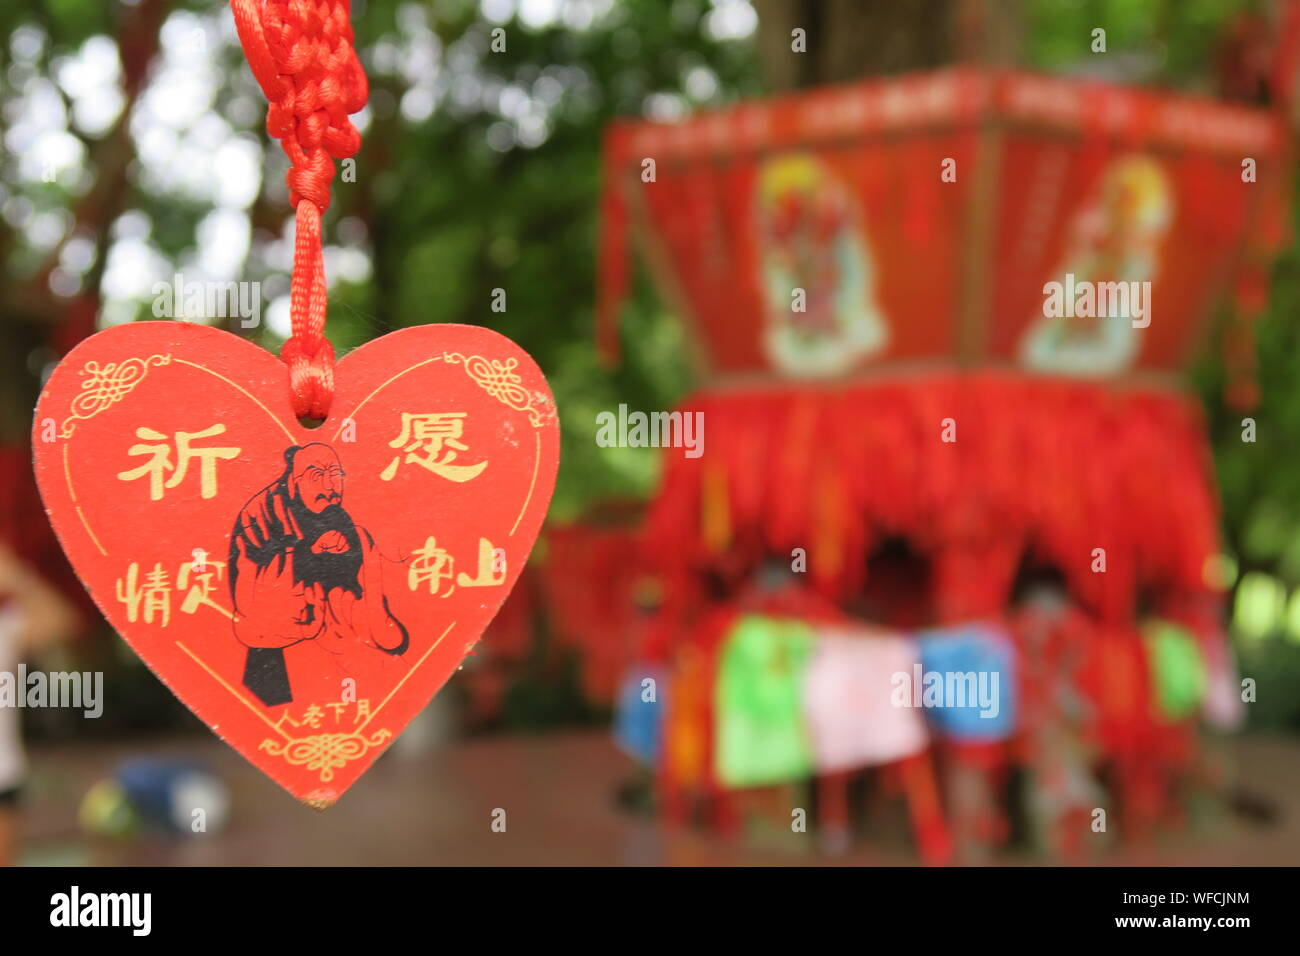 Close-up of Red Heart Shape Label chinois for sale at market Banque D'Images